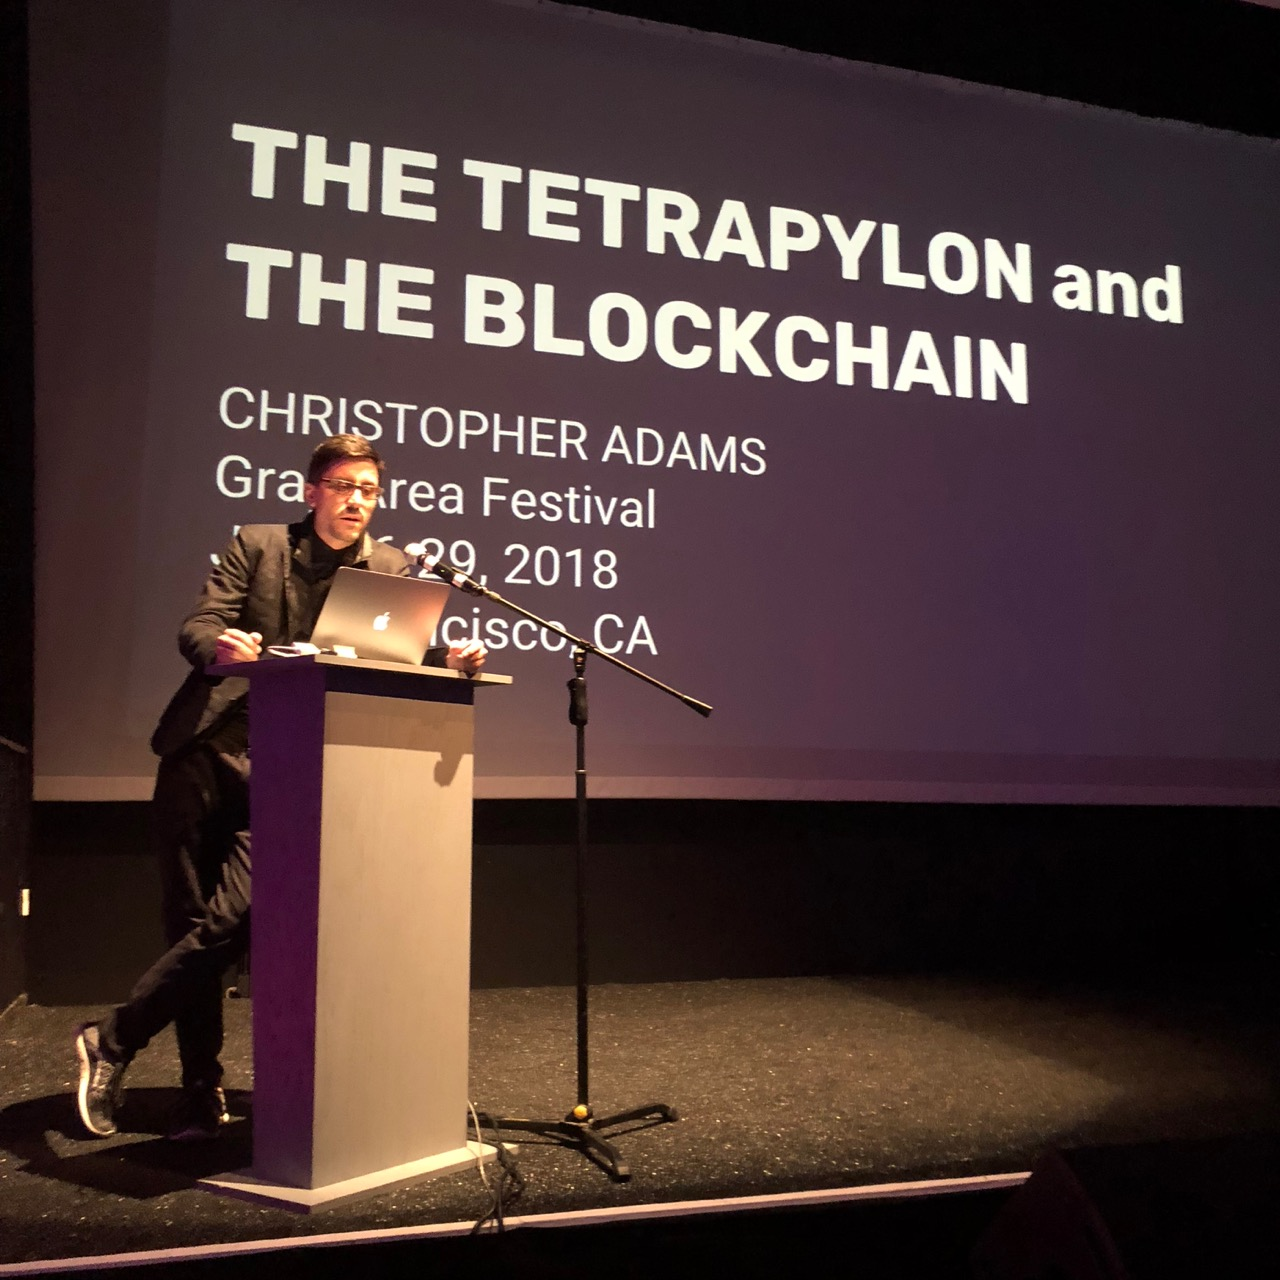 The Tetrapylon and the Blockchain by Christopher Adams